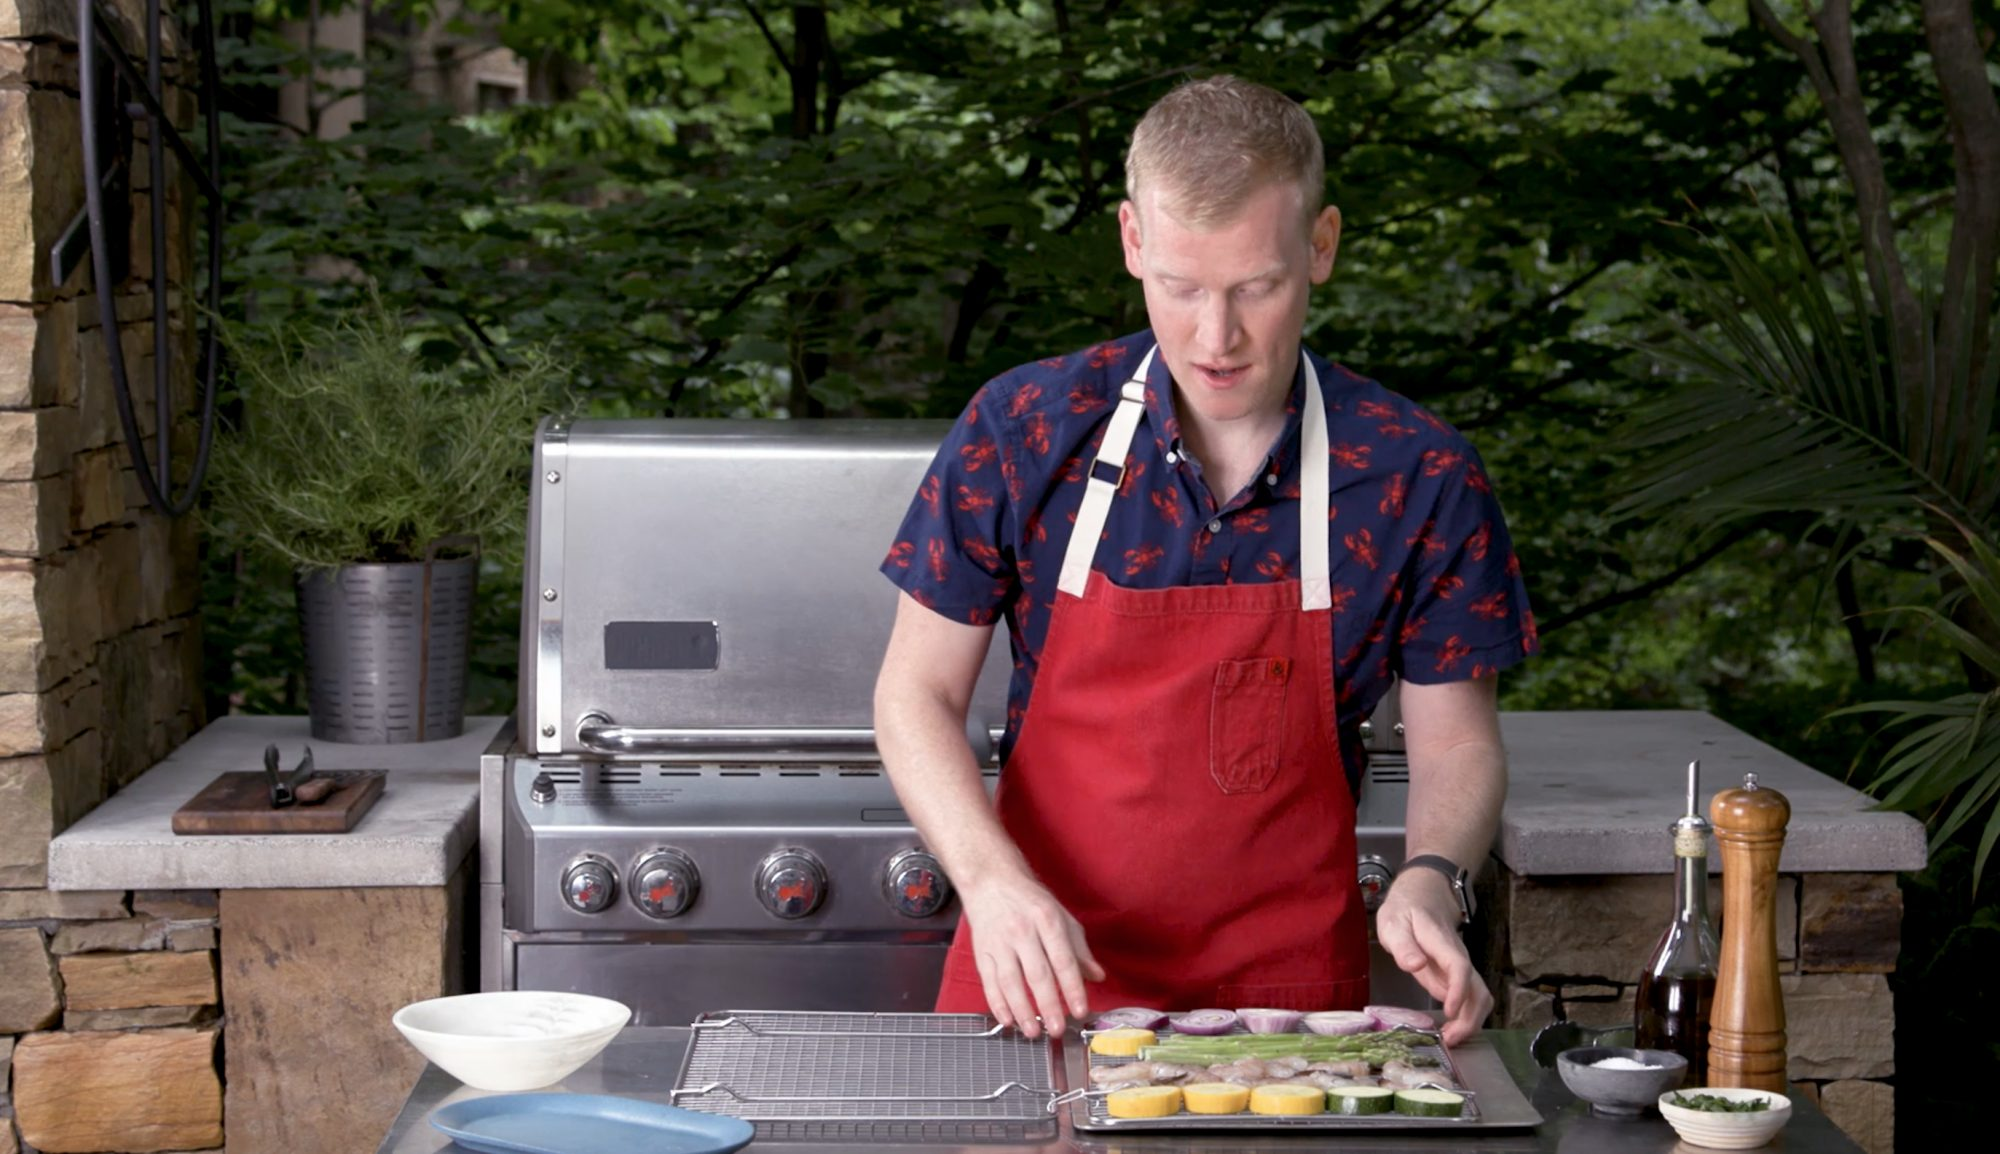 mad-genius-grill-video-ft-0719.jpg